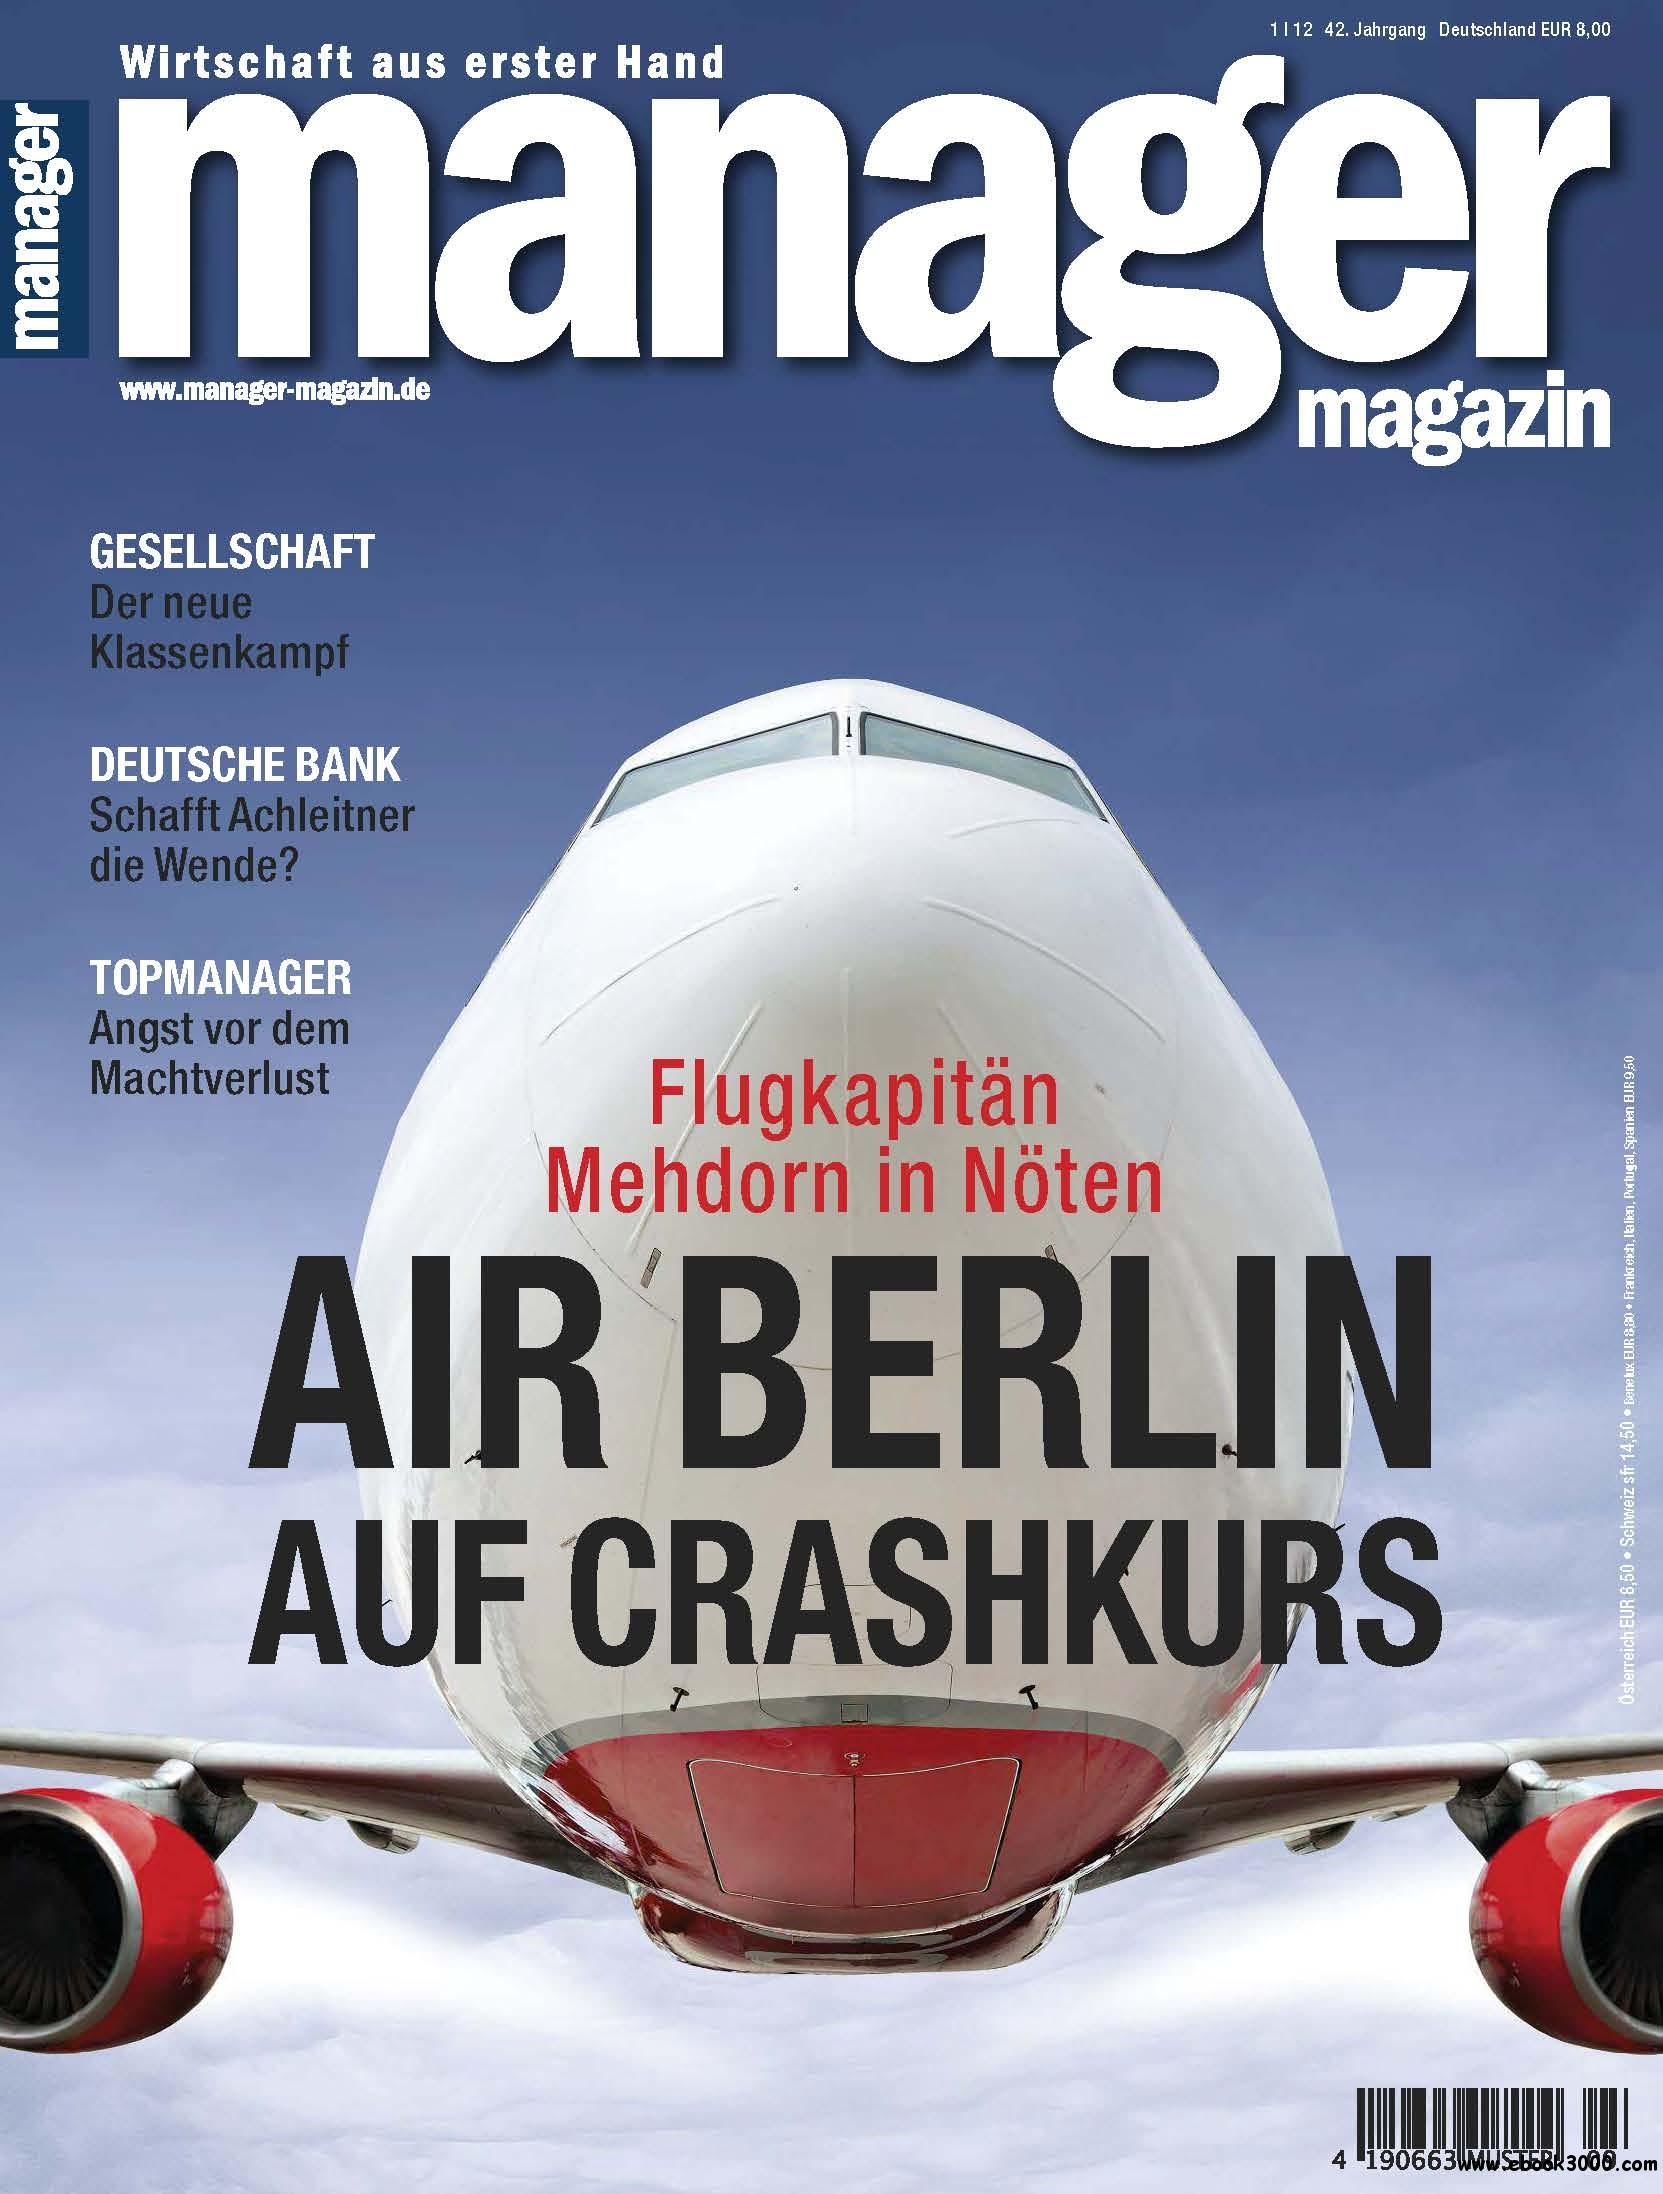 Manager Magazin Januar No 01 2012 free download